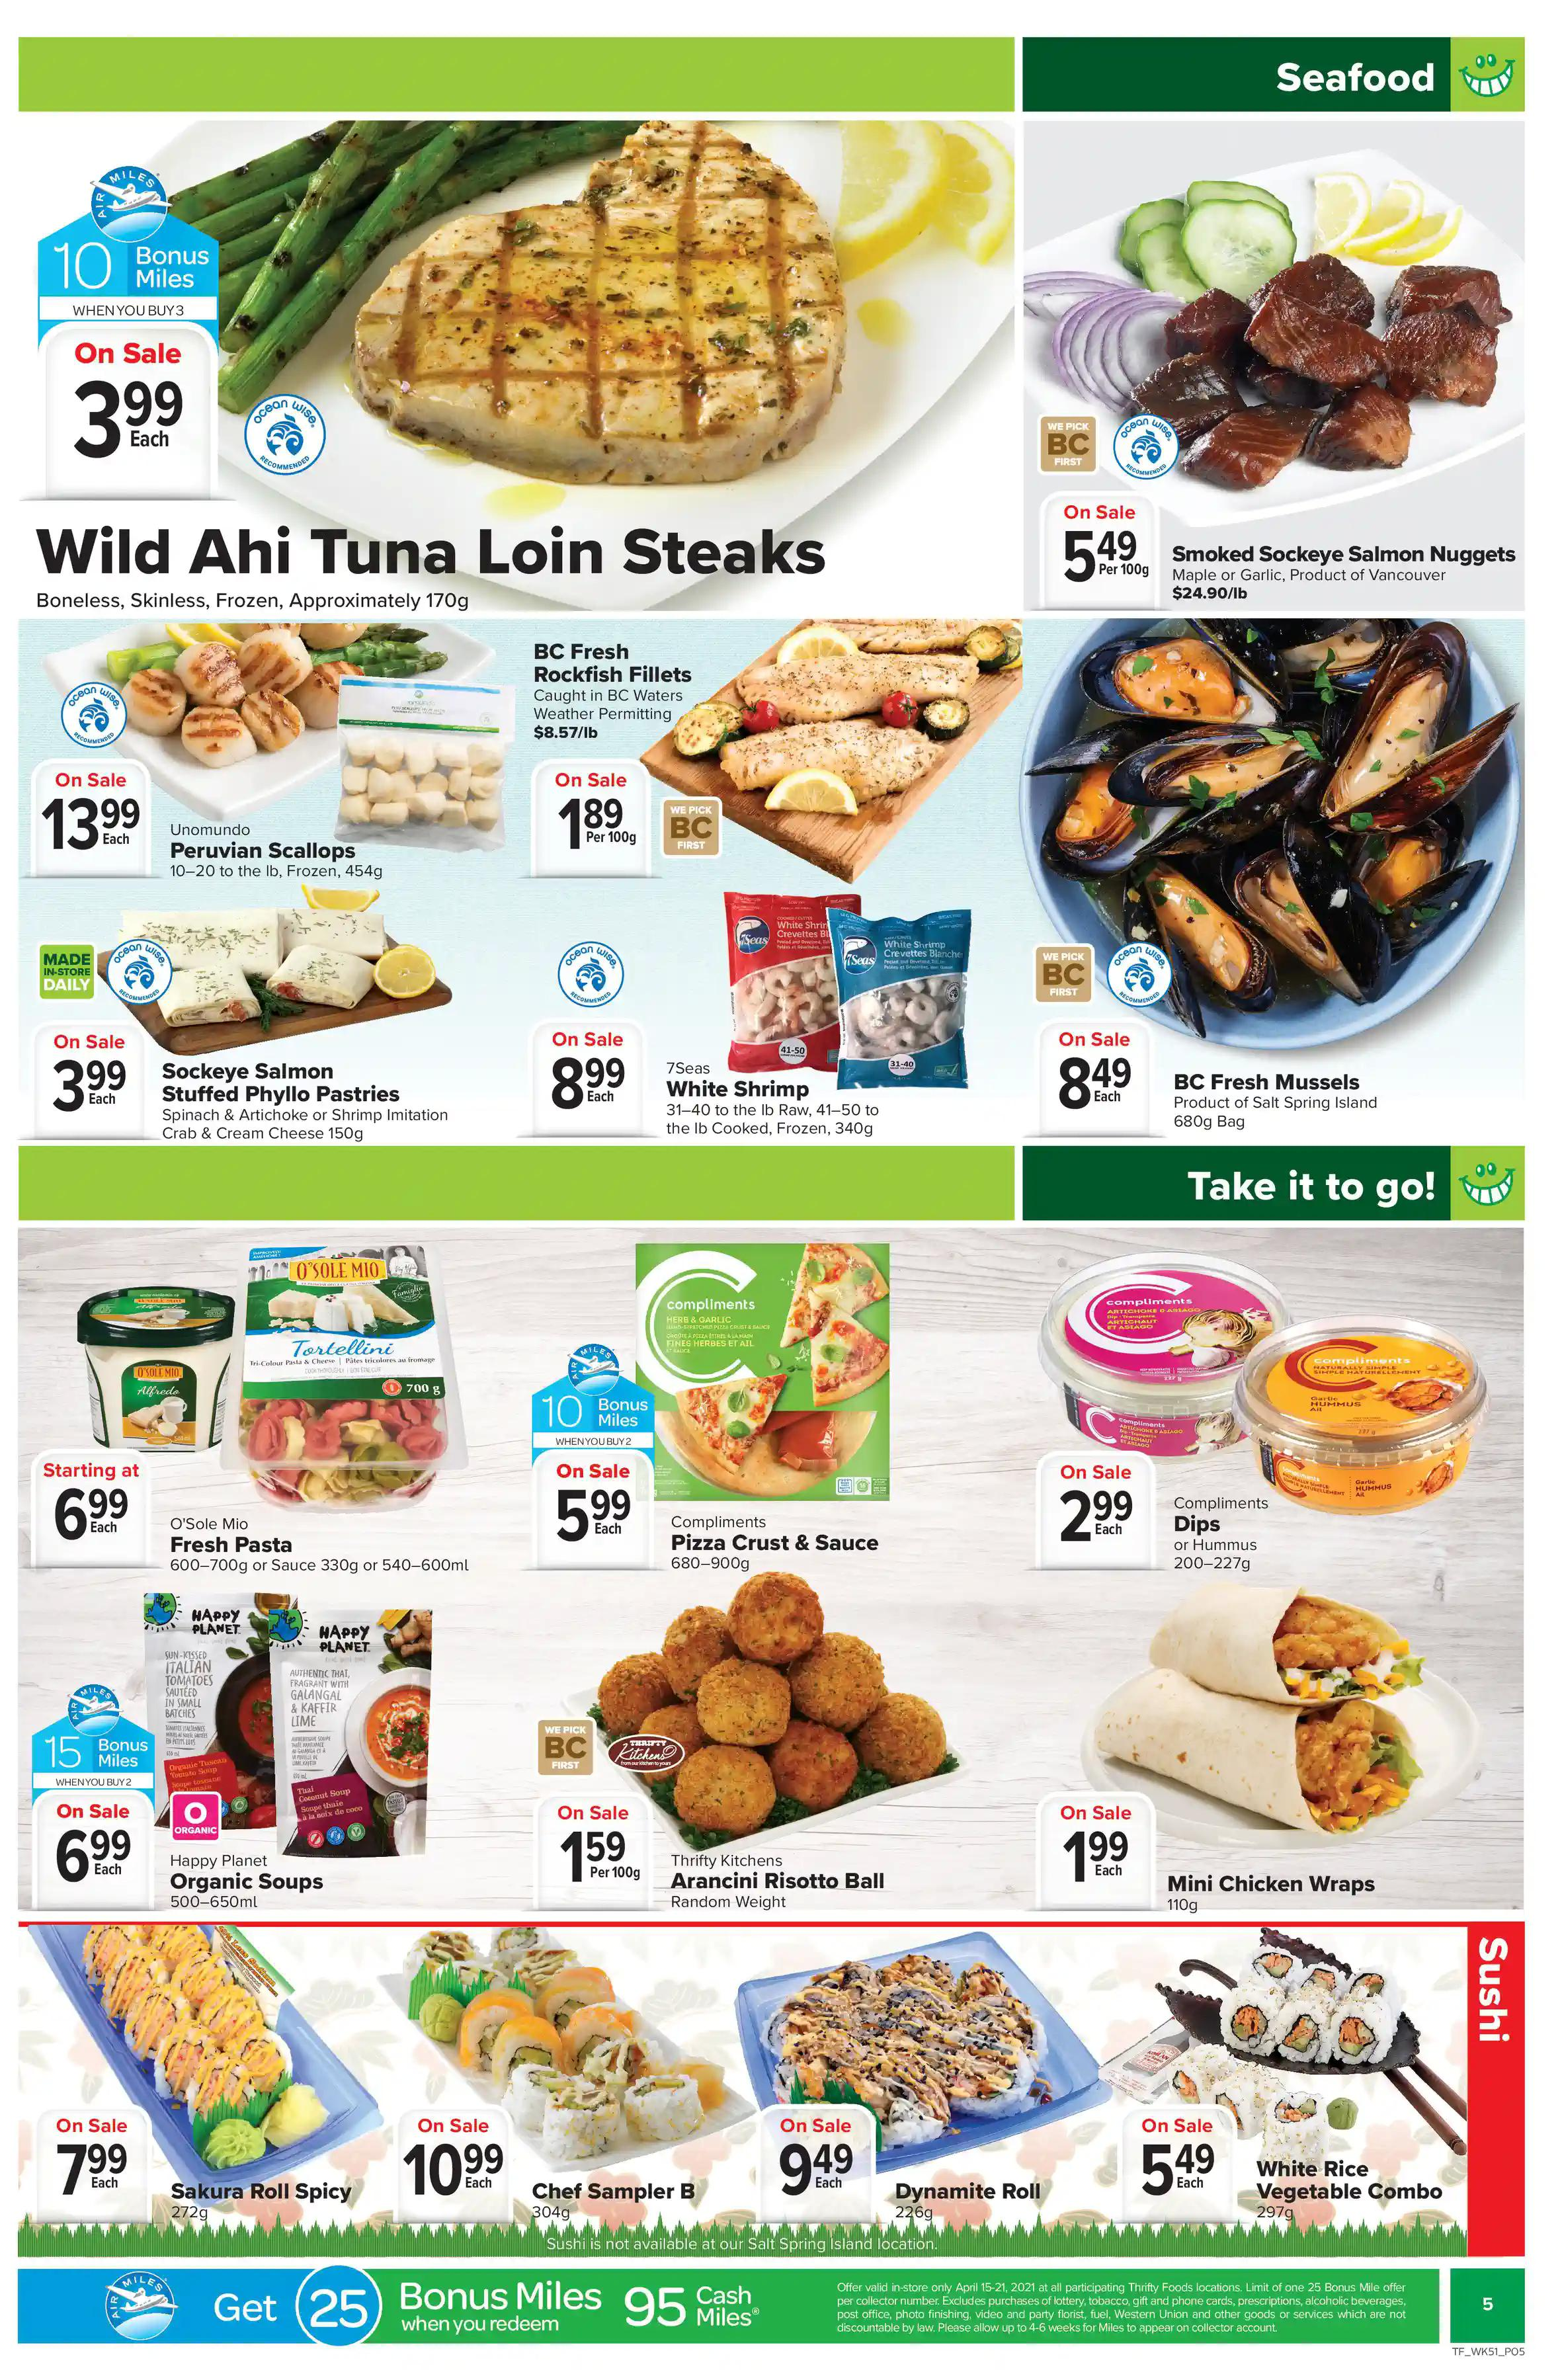 Thrifty Foods - Weekly Flyer Specials - Page 5